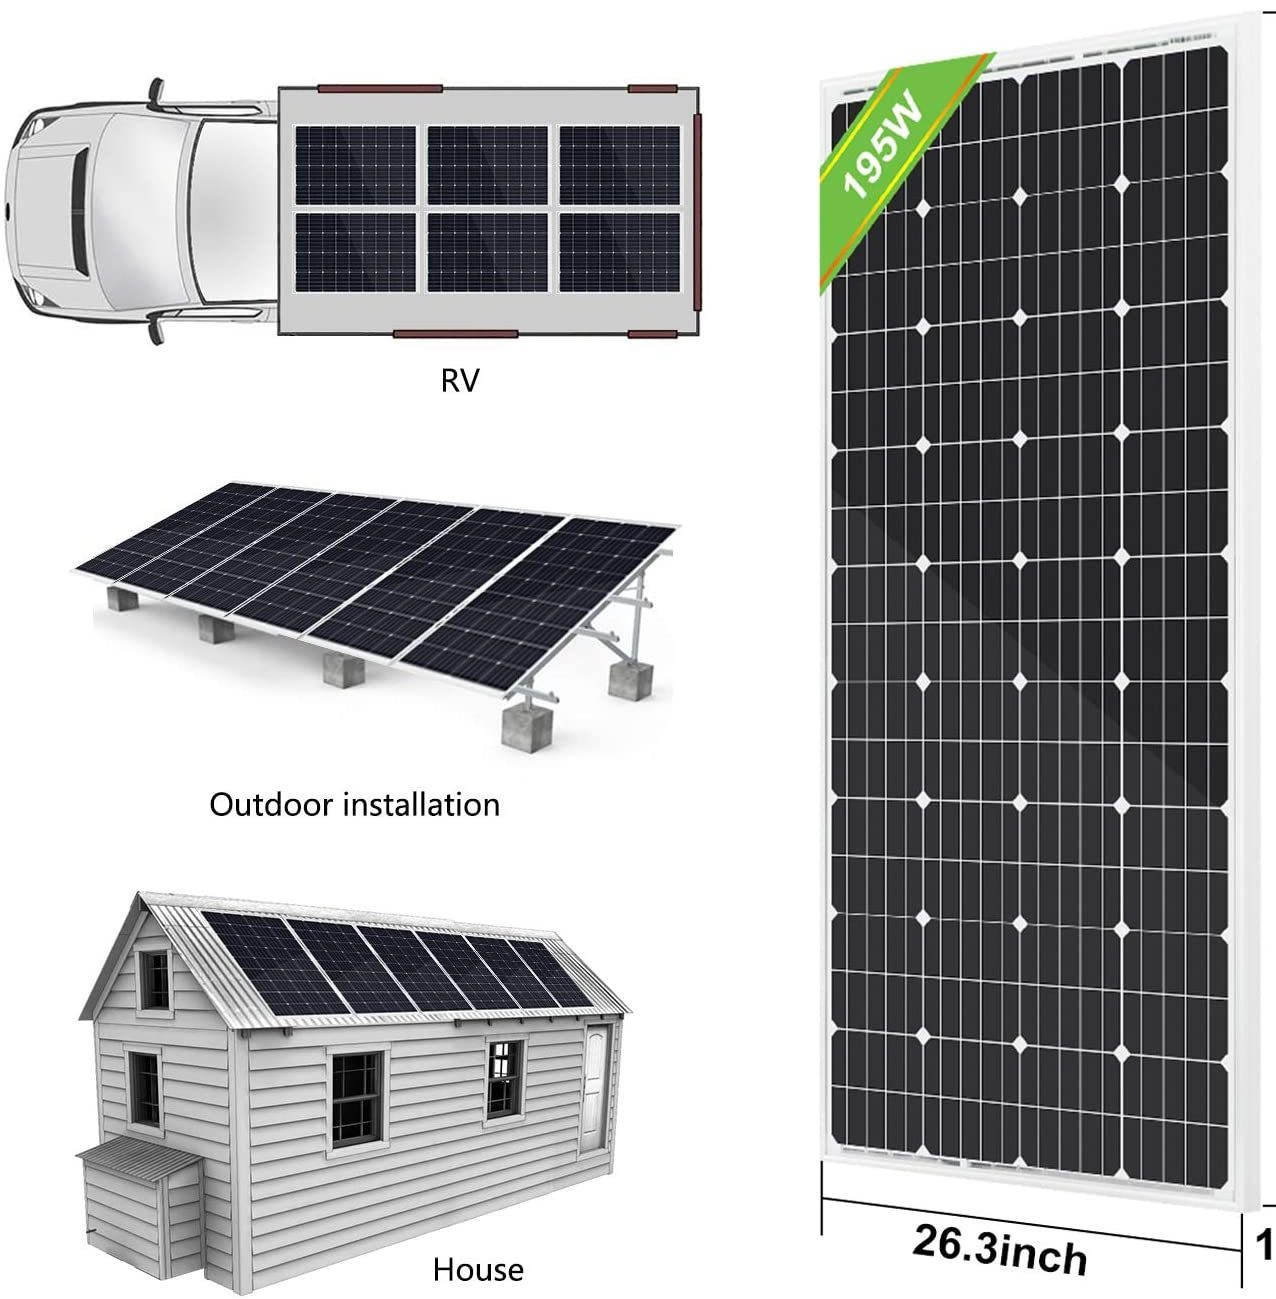 A sample 500 watt solar panel kit setup for RV, Cabin or farm